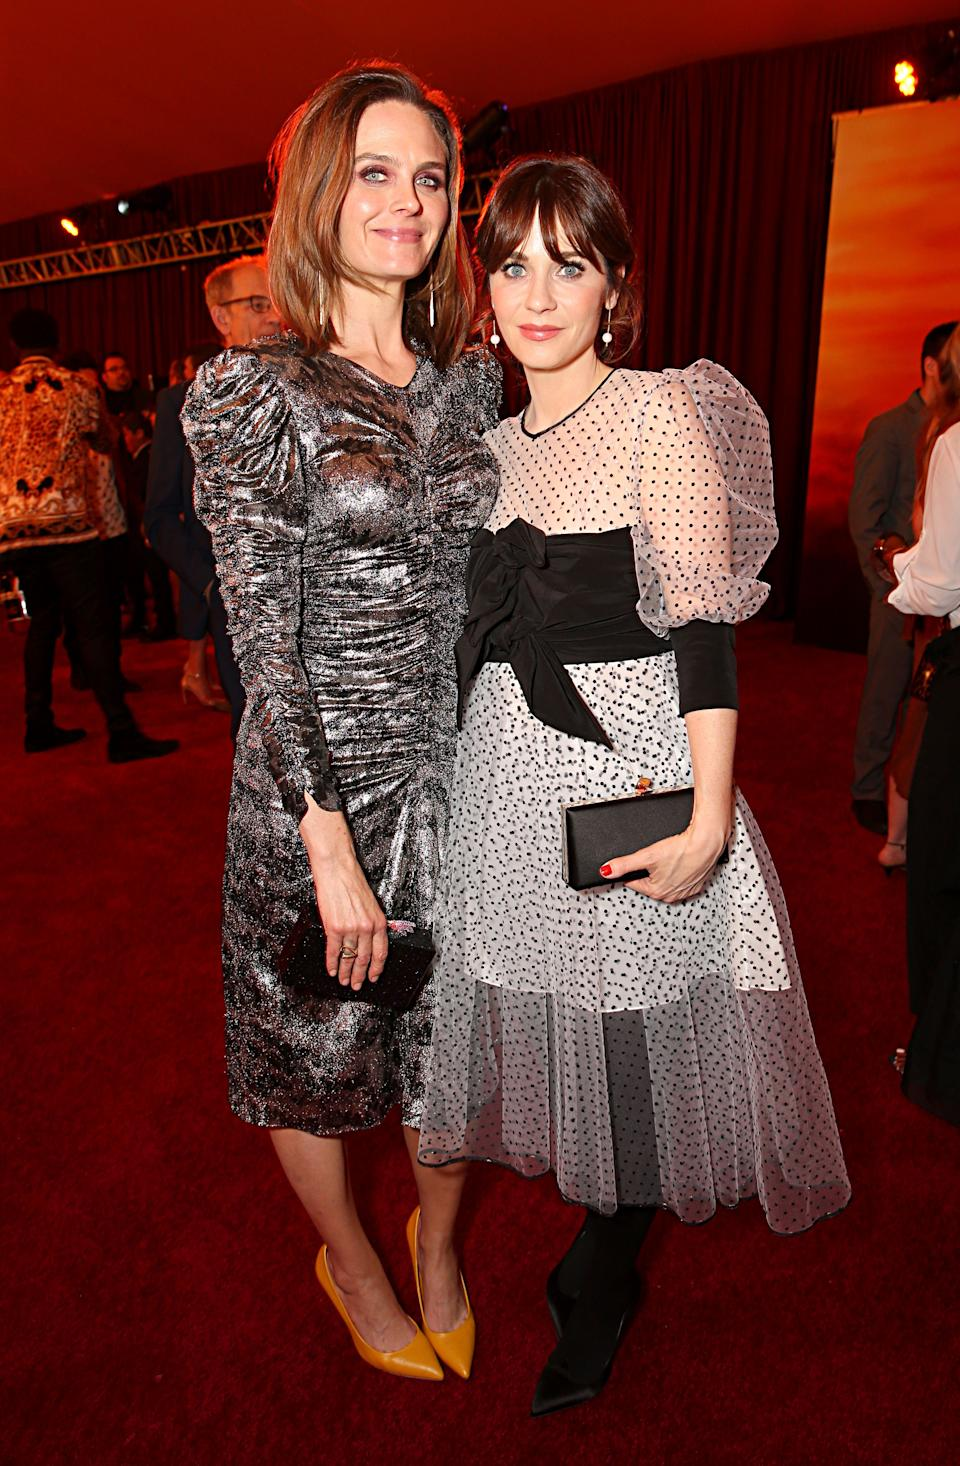 Zooey Deschanel S Husband Files For Divorce After She Goes Public With New Relationship